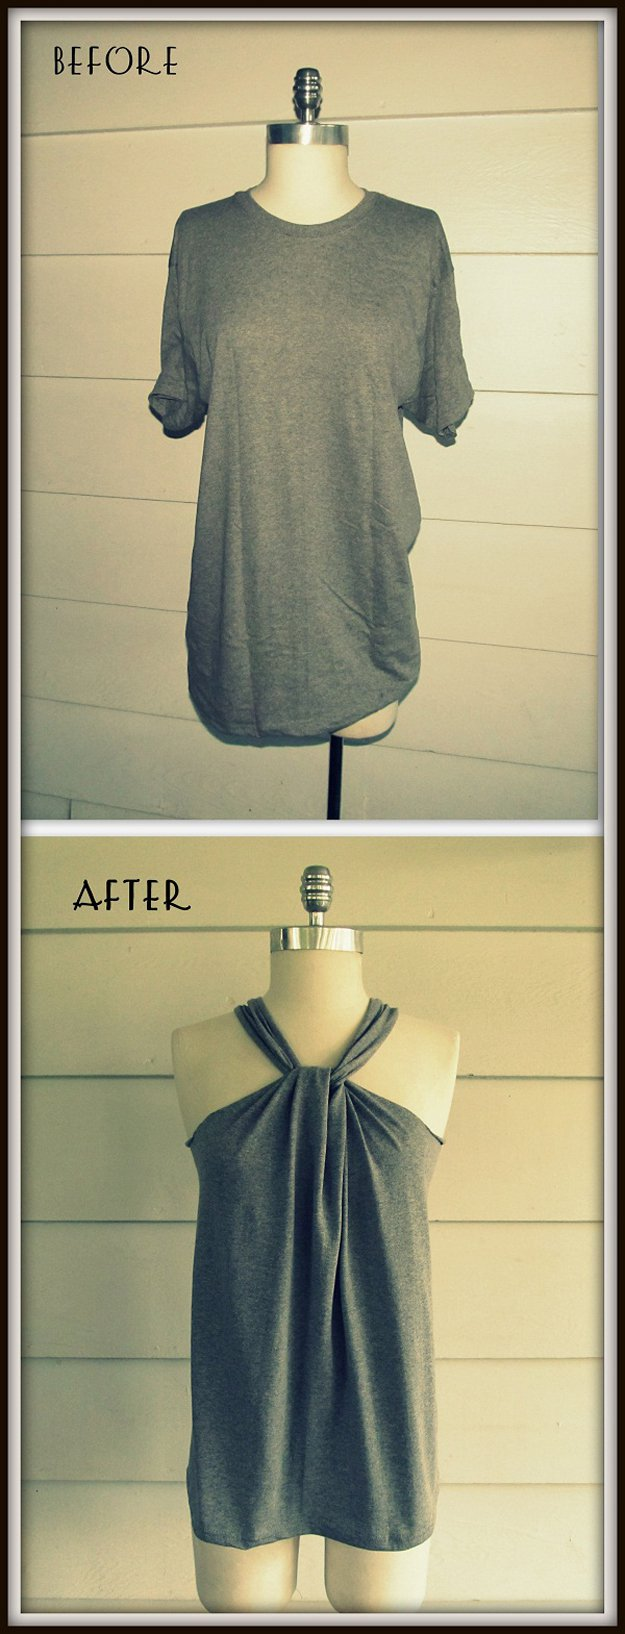 Easy Haltered DIY Top Design | diyready.com/diy-clothes-sewing-blouses-tutorial/